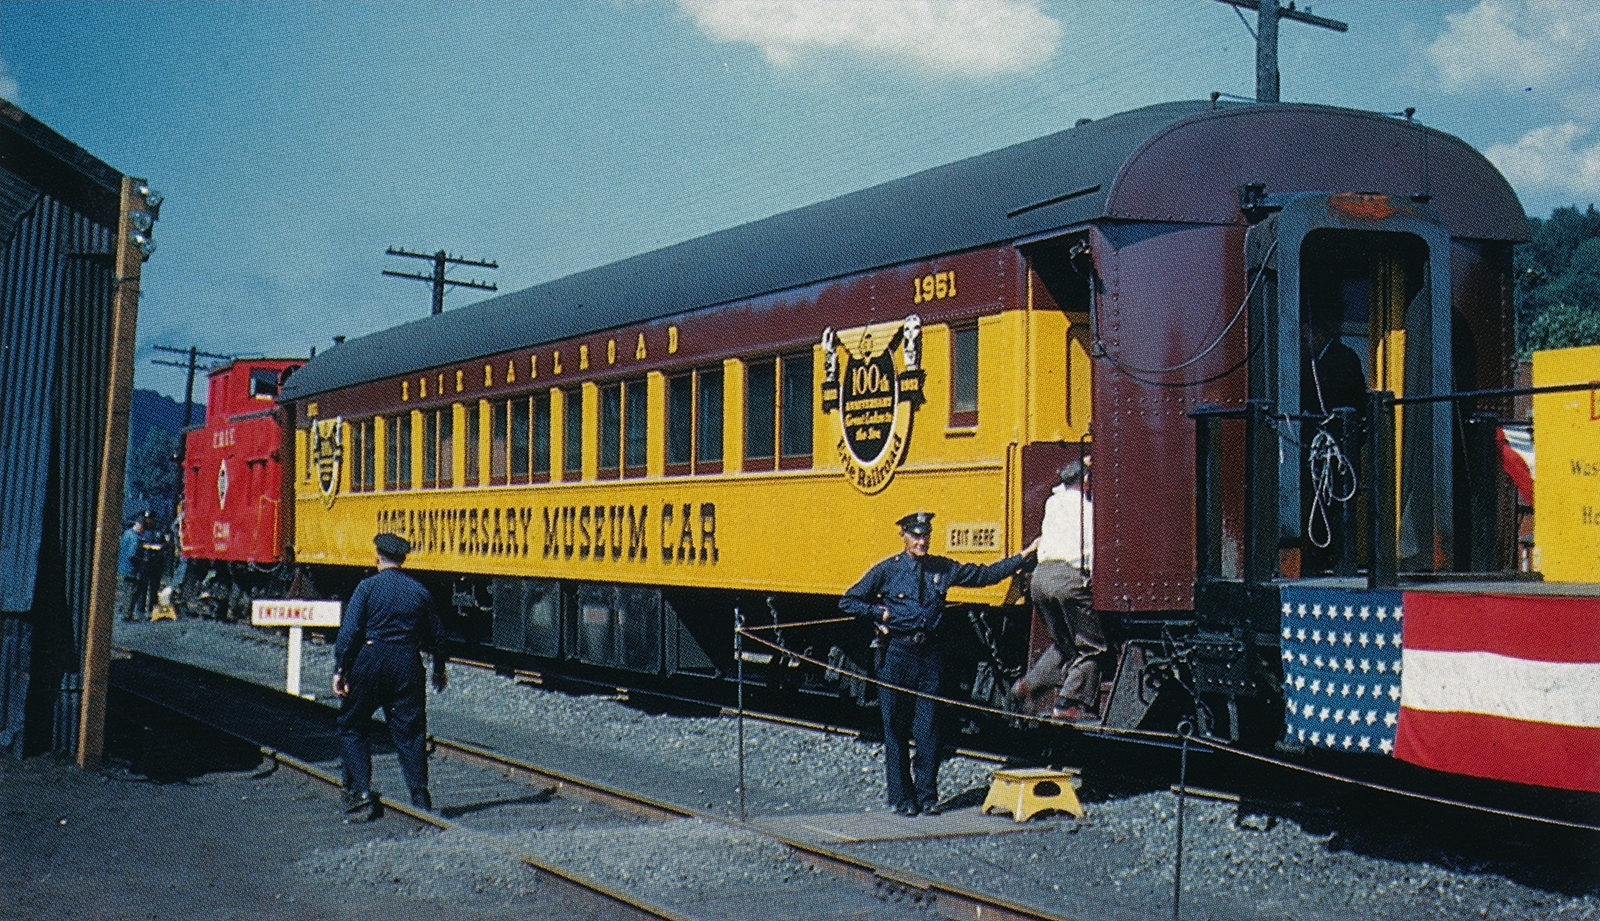 In early 1951, Erie coach #2204 was stripped of its 84 seats and turned into a museum car to tour the Erie system in celebration of the railroad's 100th anniversary. The car is viewed here on display to the public later that year.  (John Benton collection, courtesy Morning Sun Books –  Erie/DL&W Color Guide to Freight and Passenger Equipment , page 13)